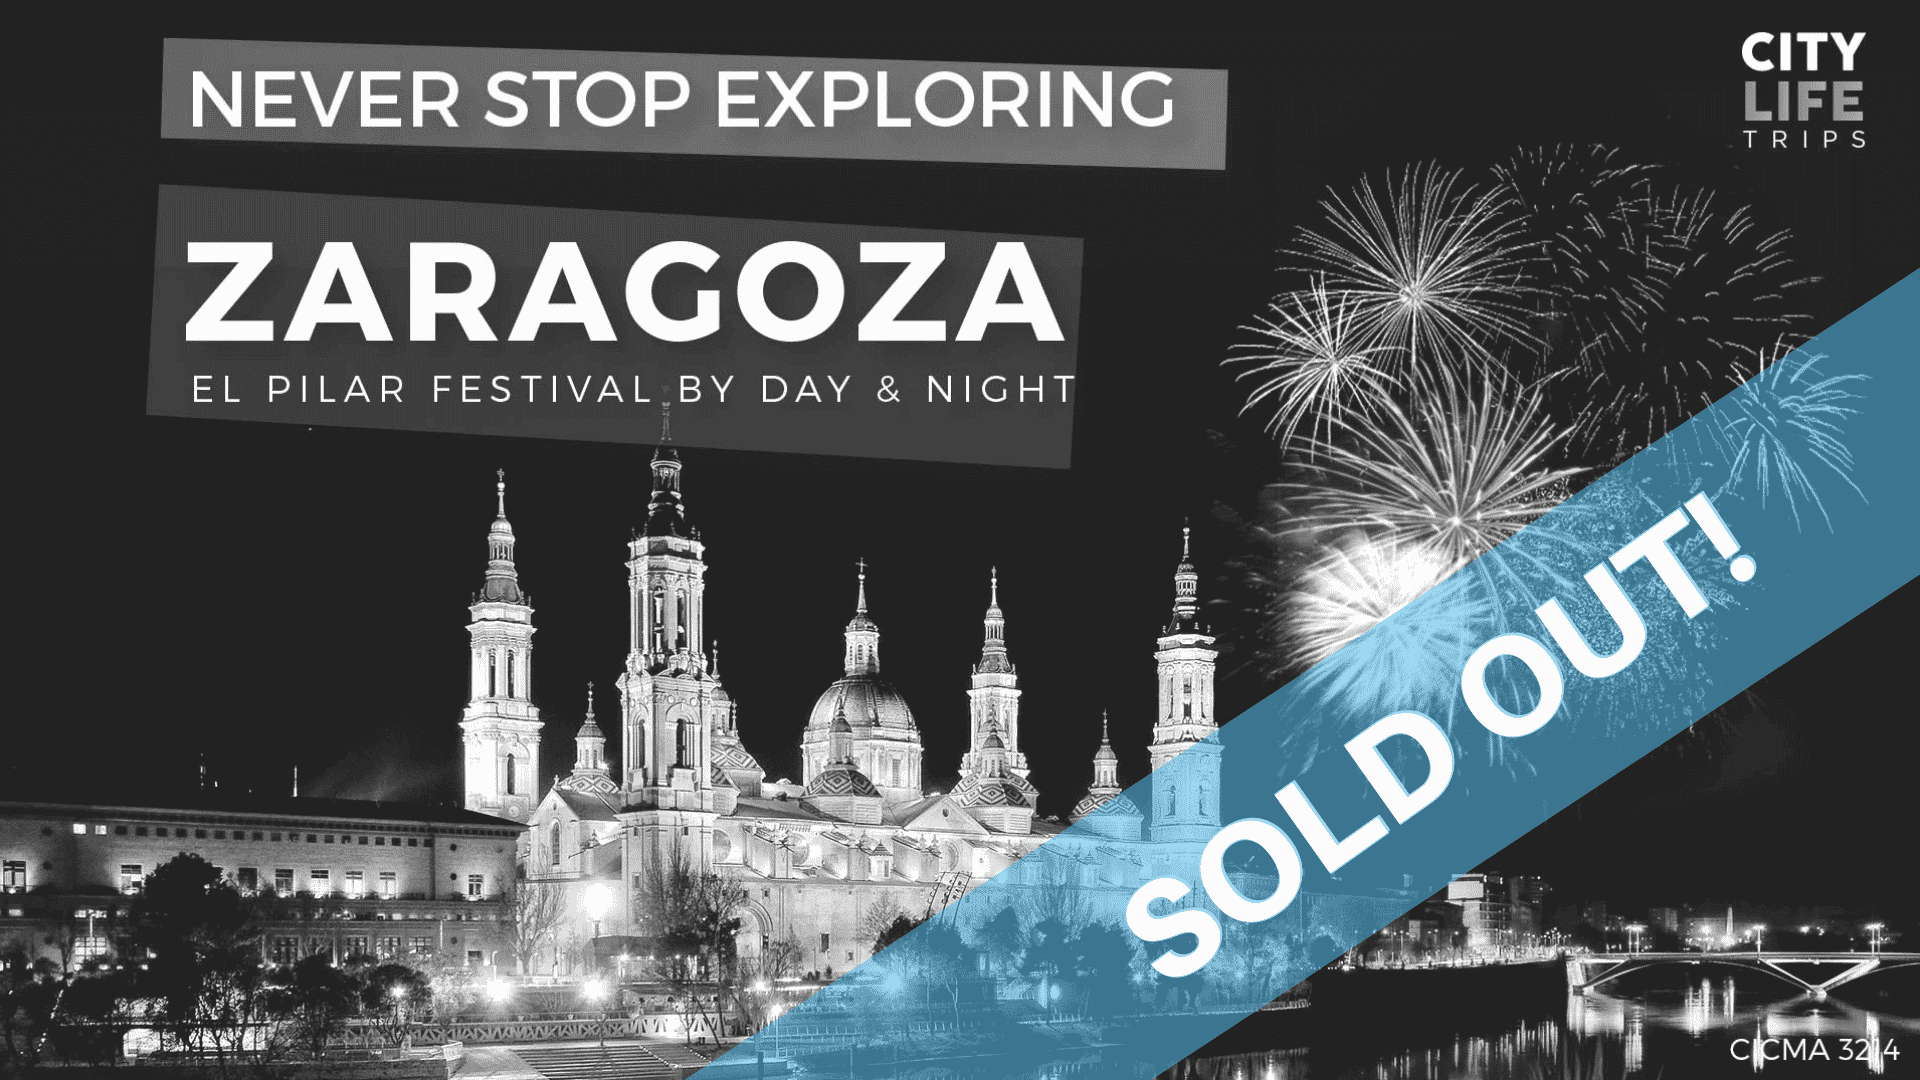 Zaragoza - El Pilar Festival by Day & Night